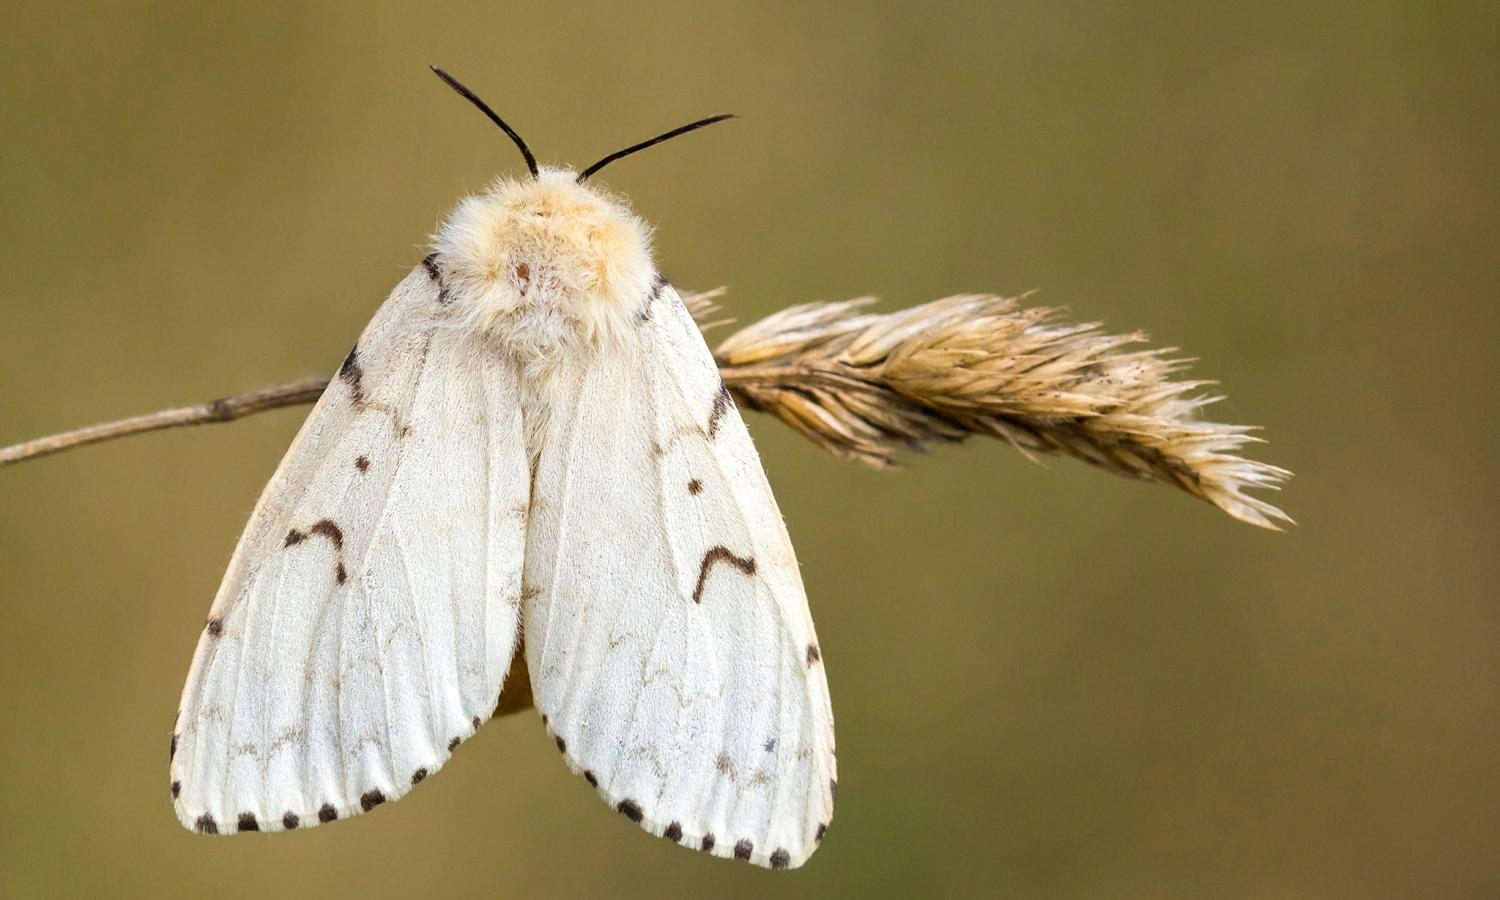 Picture of the Gypsy Moth